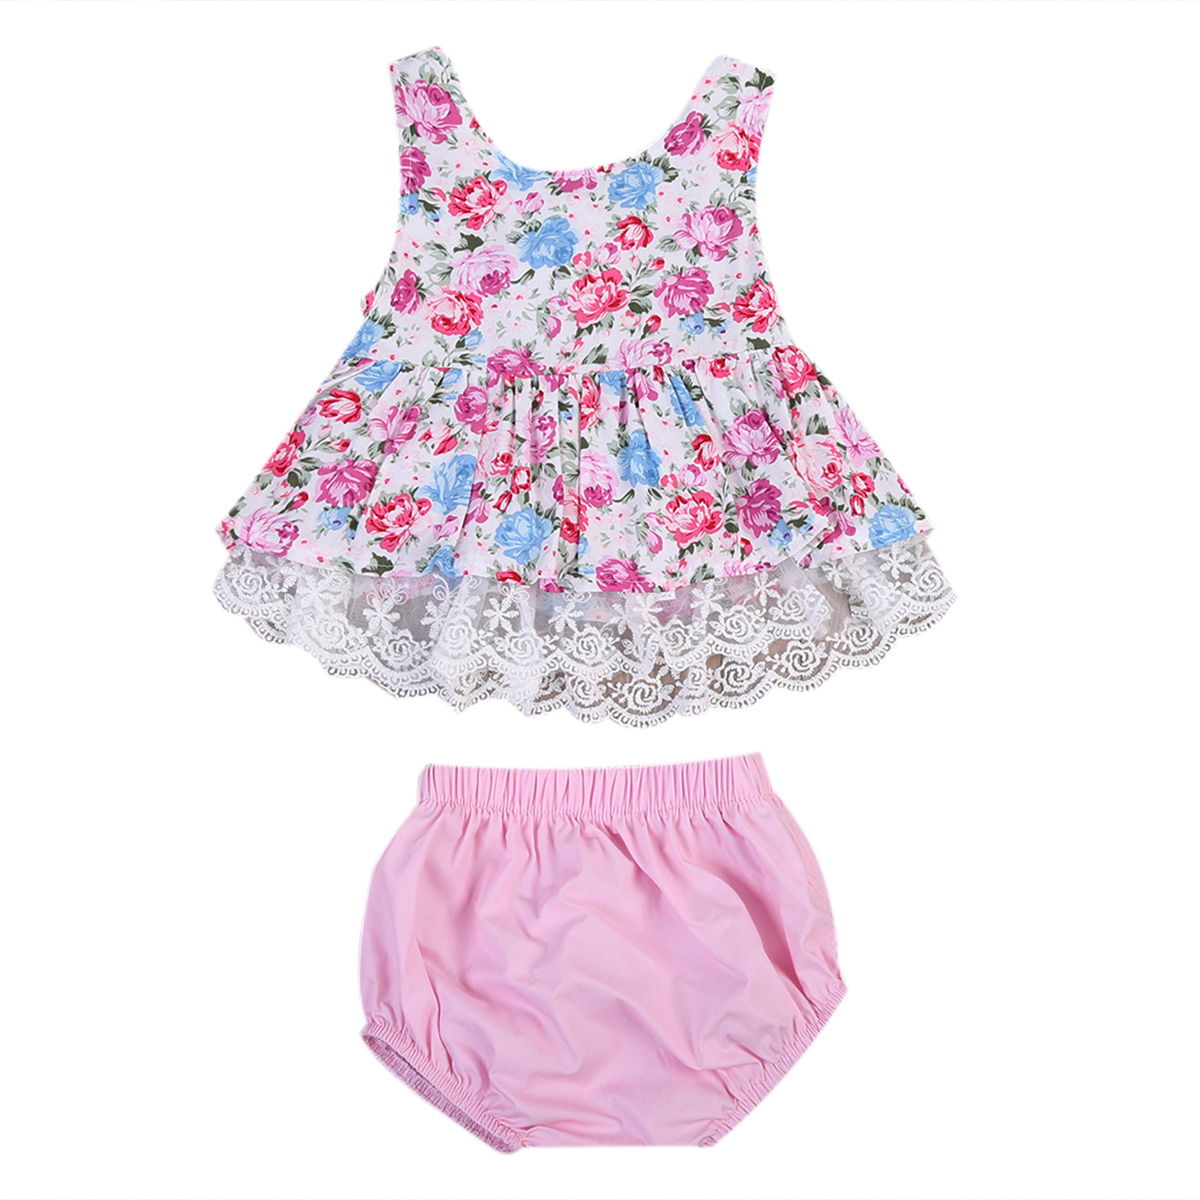 2017 Cute Newborn Baby Girl Clothes Set Summer Sleeveless Lace Floral Mini Dress Tops+Bloomers Shorts 2PCS Outfits Kids Clothing 0 24m floral baby girl clothes set 2017 summer sleeveless ruffles crop tops baby bloomers shorts 2pcs outfits children sunsuit